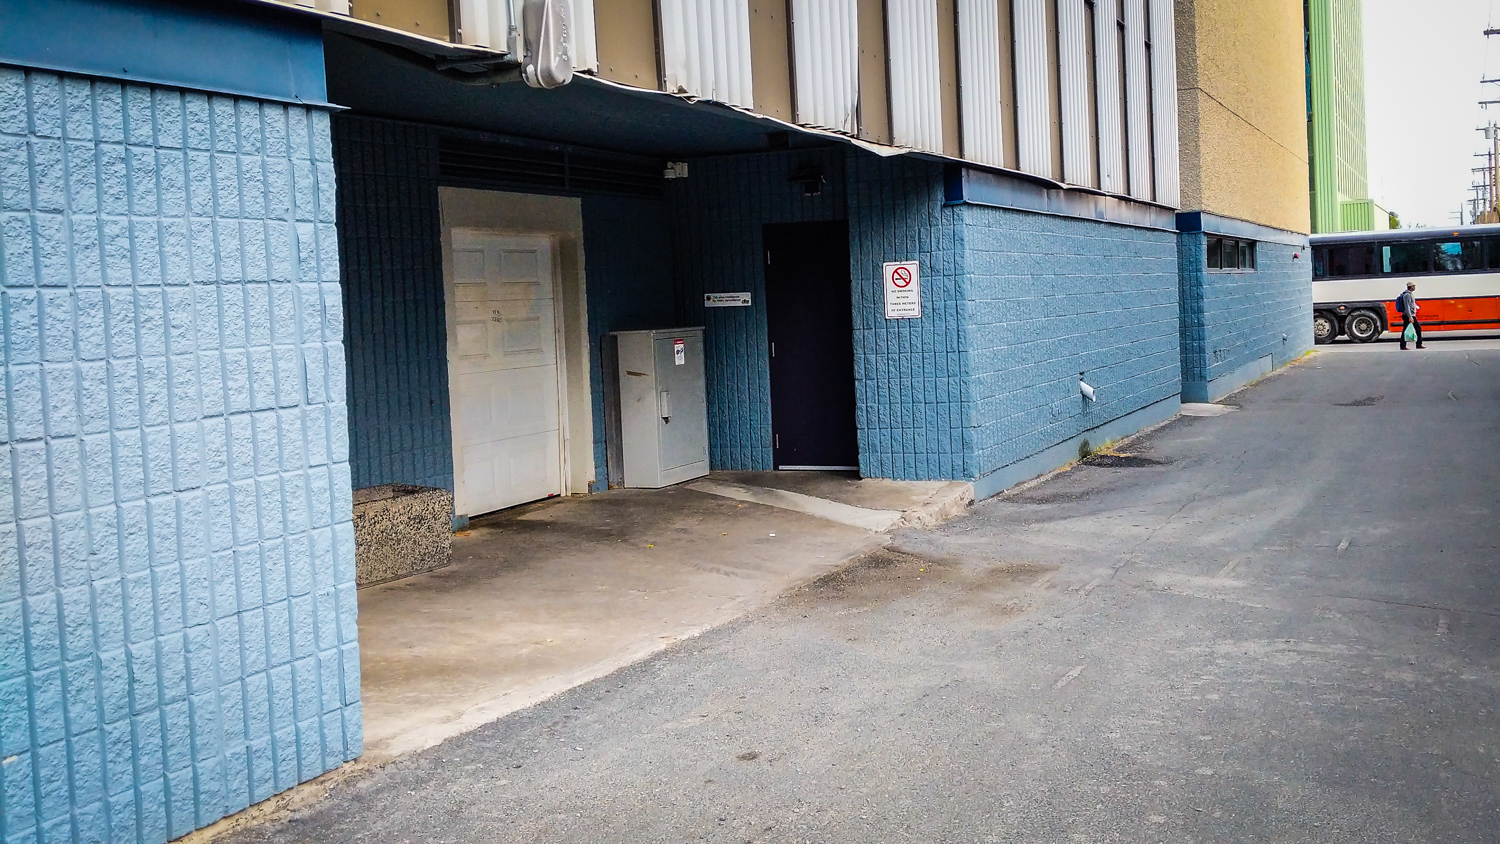 Court documents state the attack took place in an alcove behind Yellowknife's Capitol Theatre